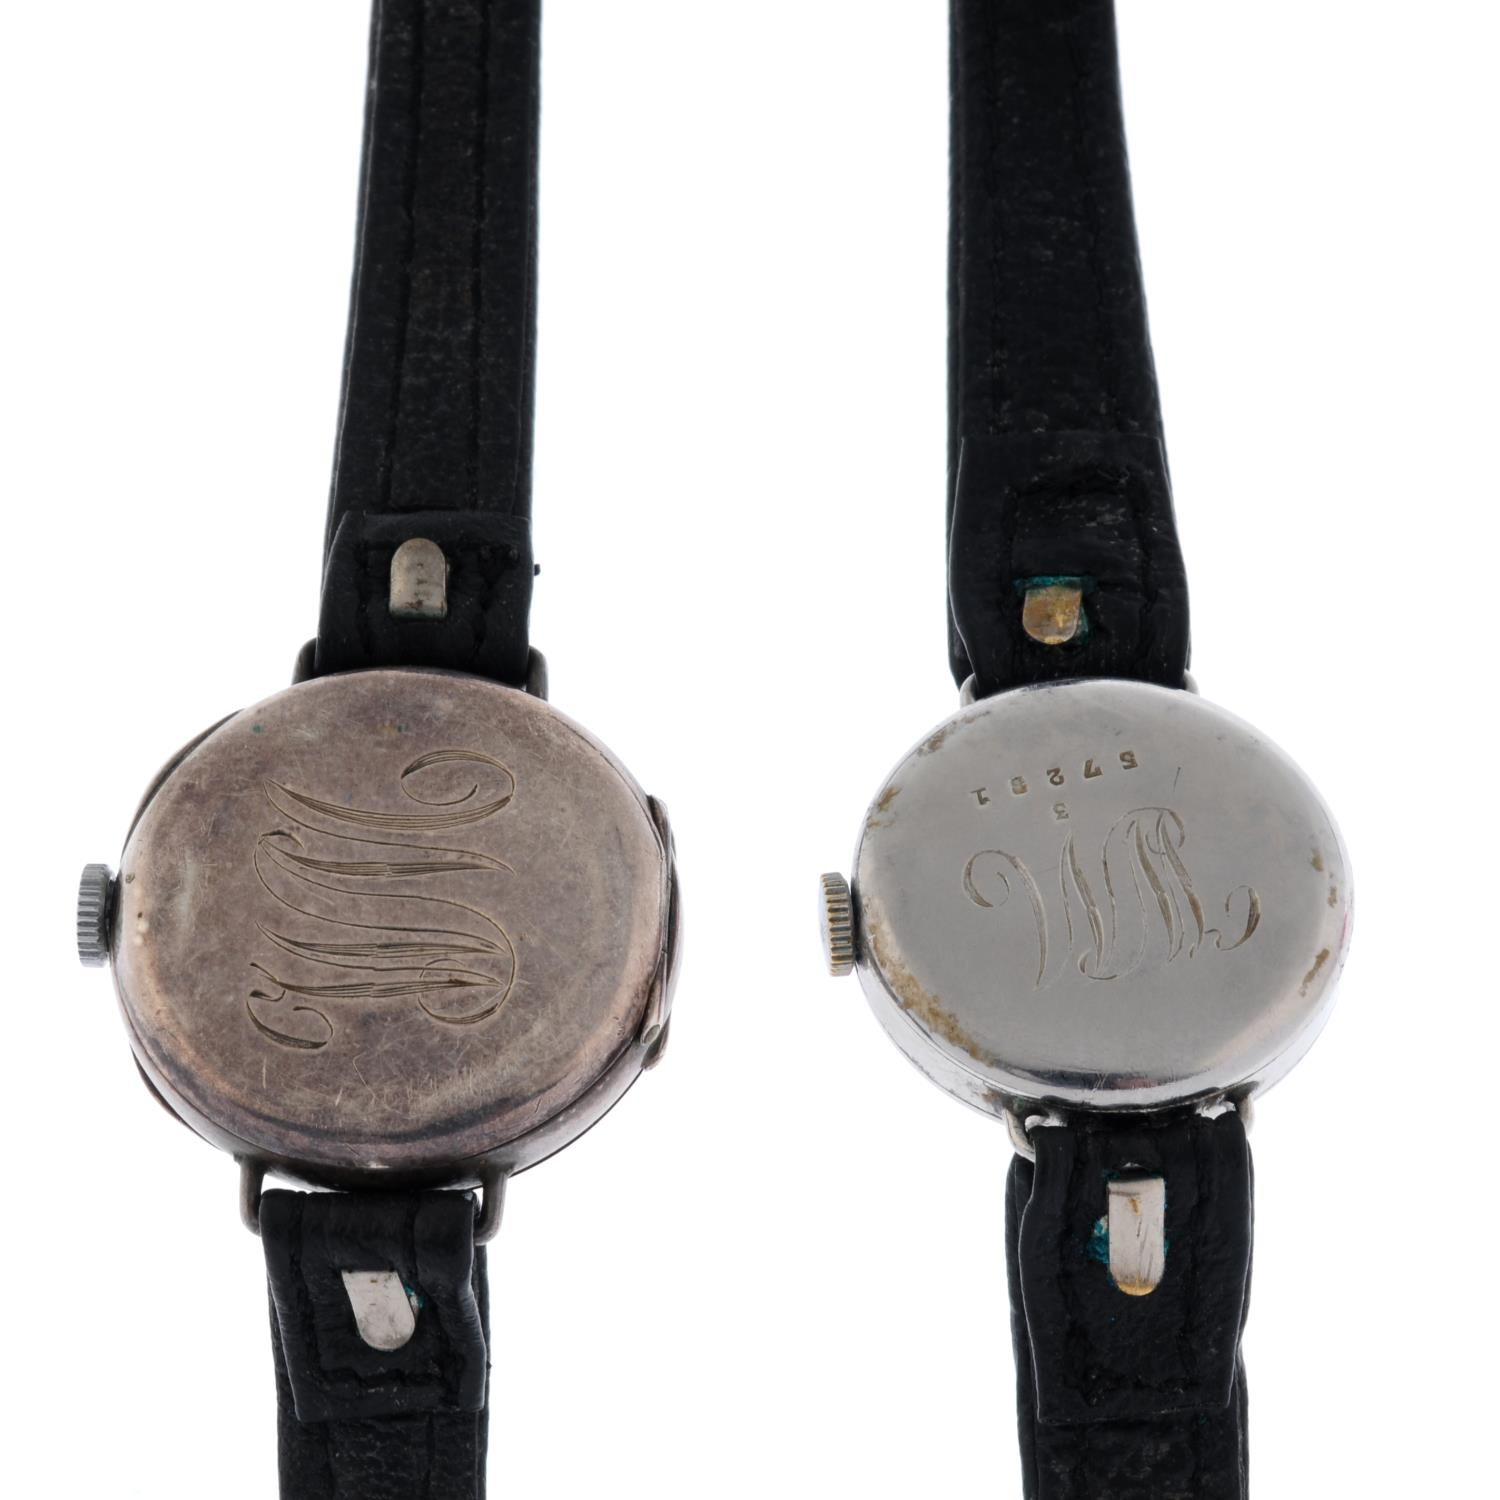 A trench style wrist watch. - Image 2 of 2